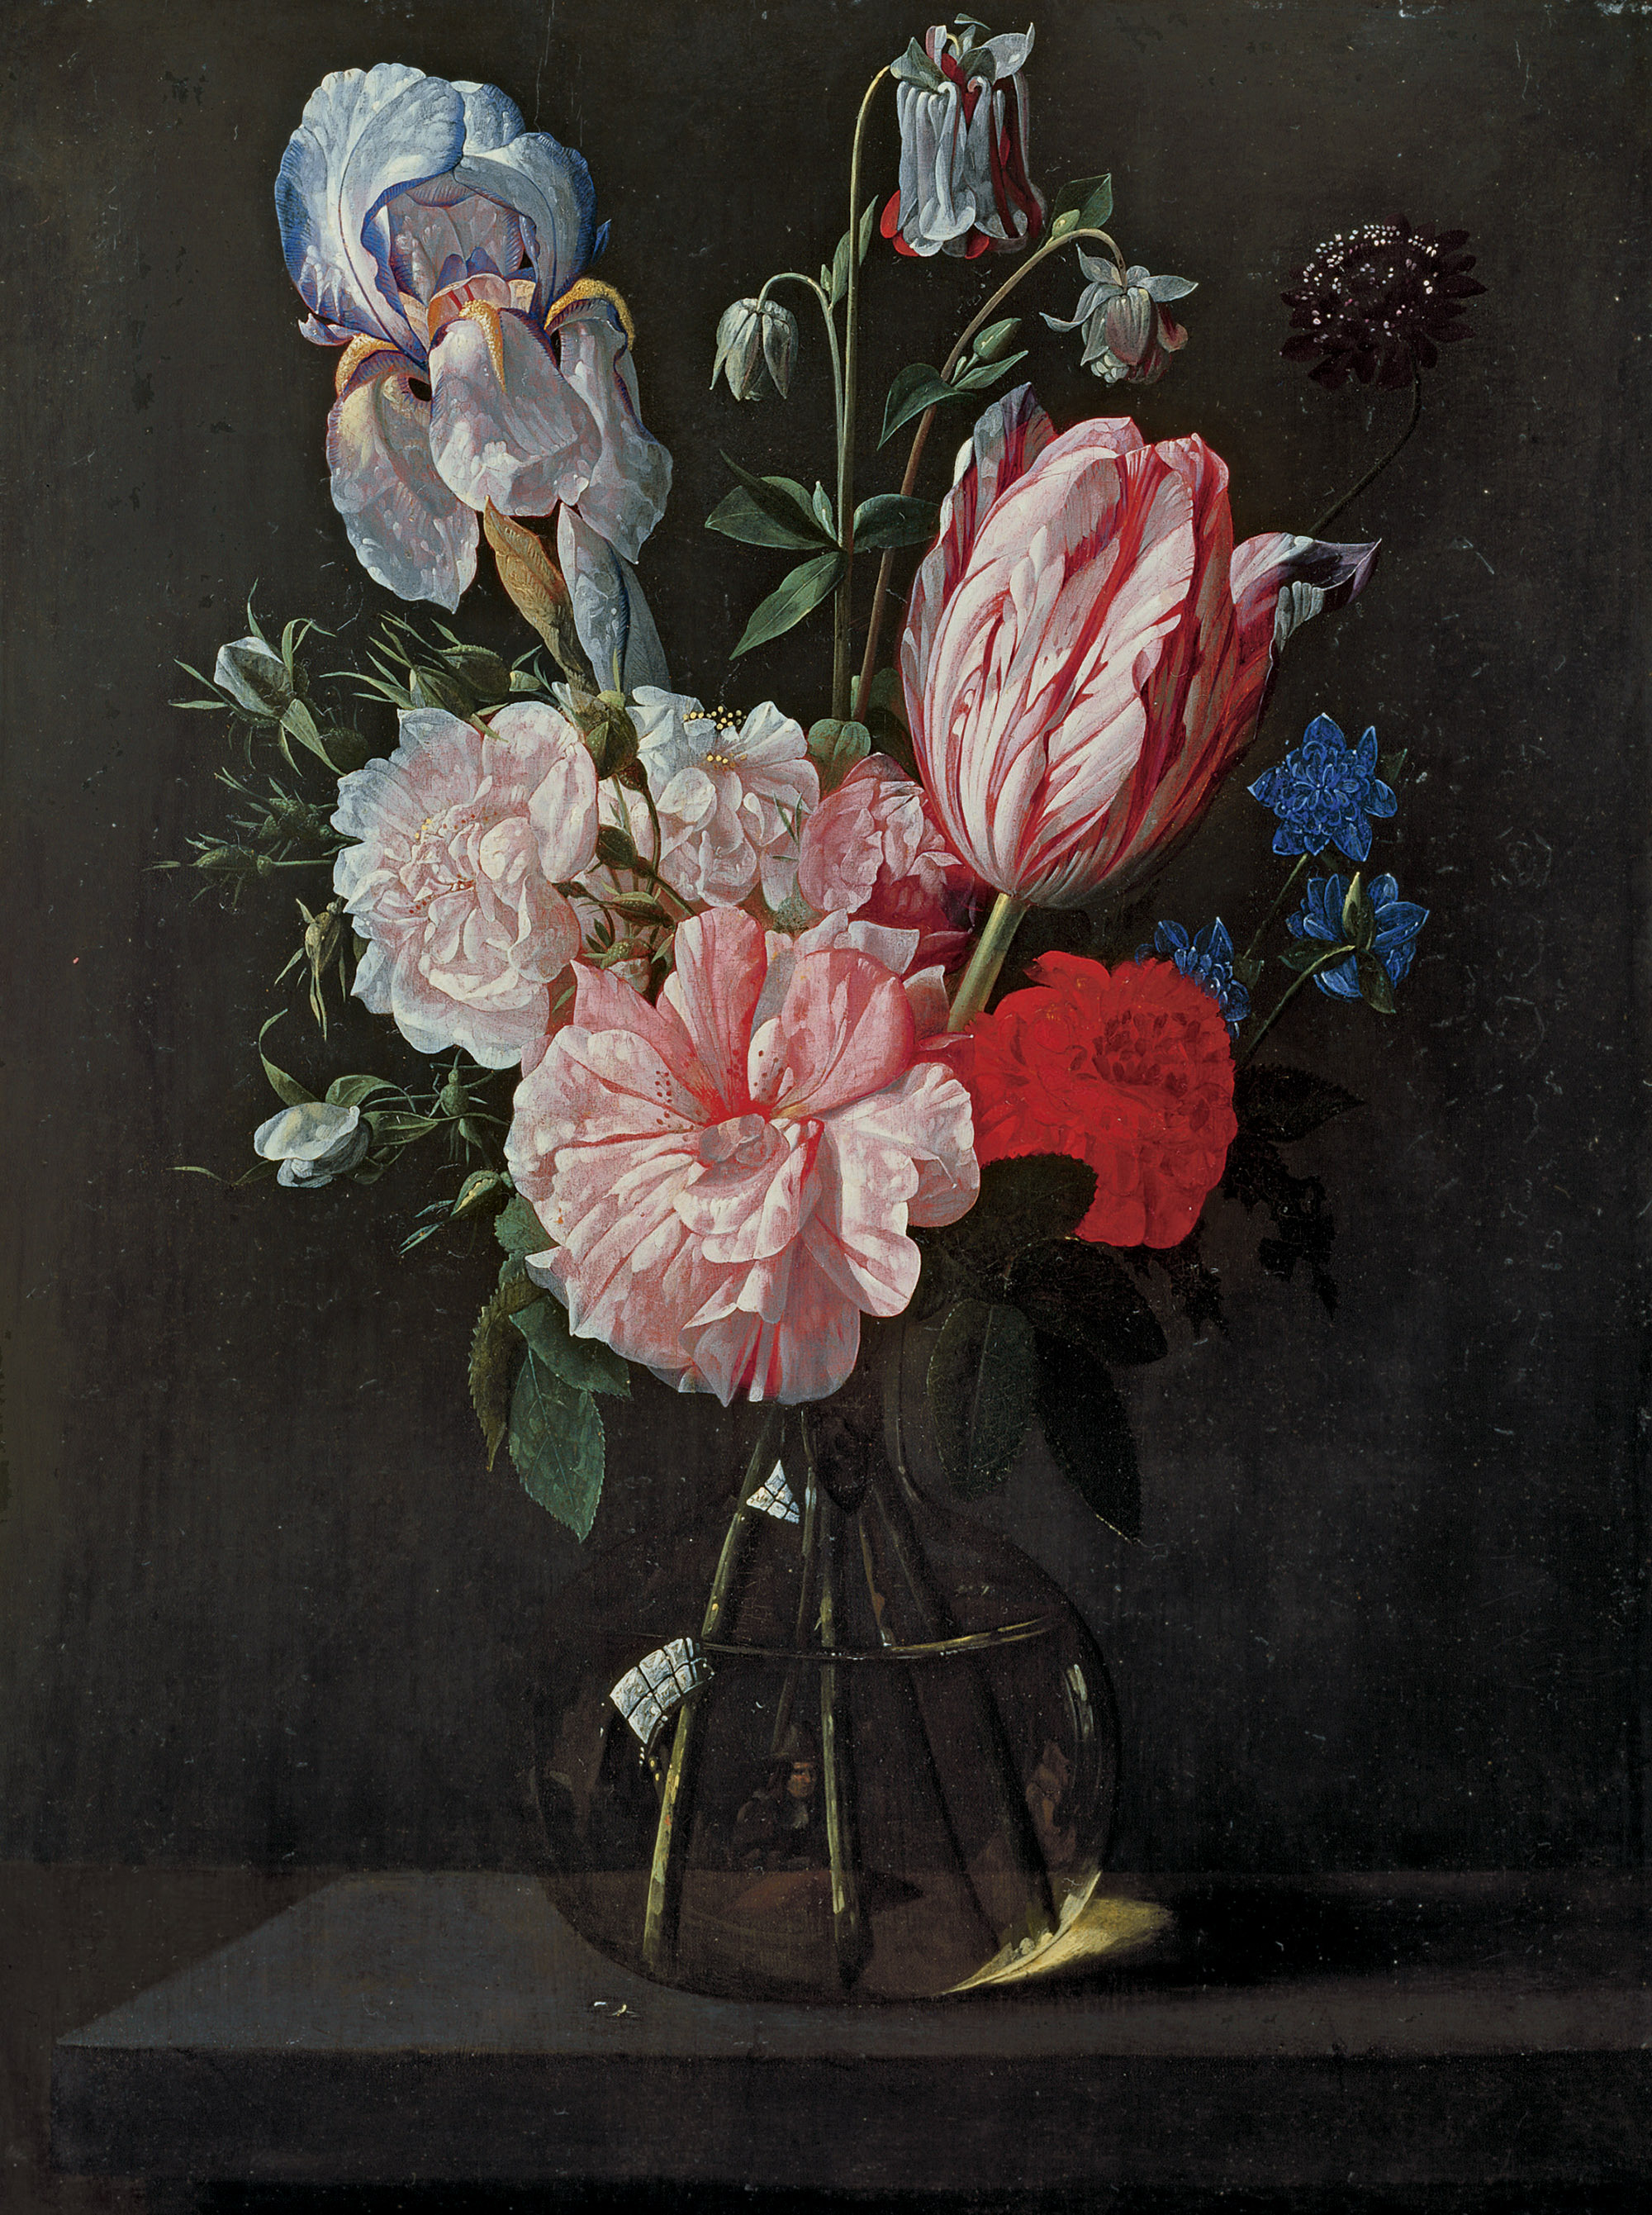 A tulip, roses, iris and other flowers in a glass vase on a ledge